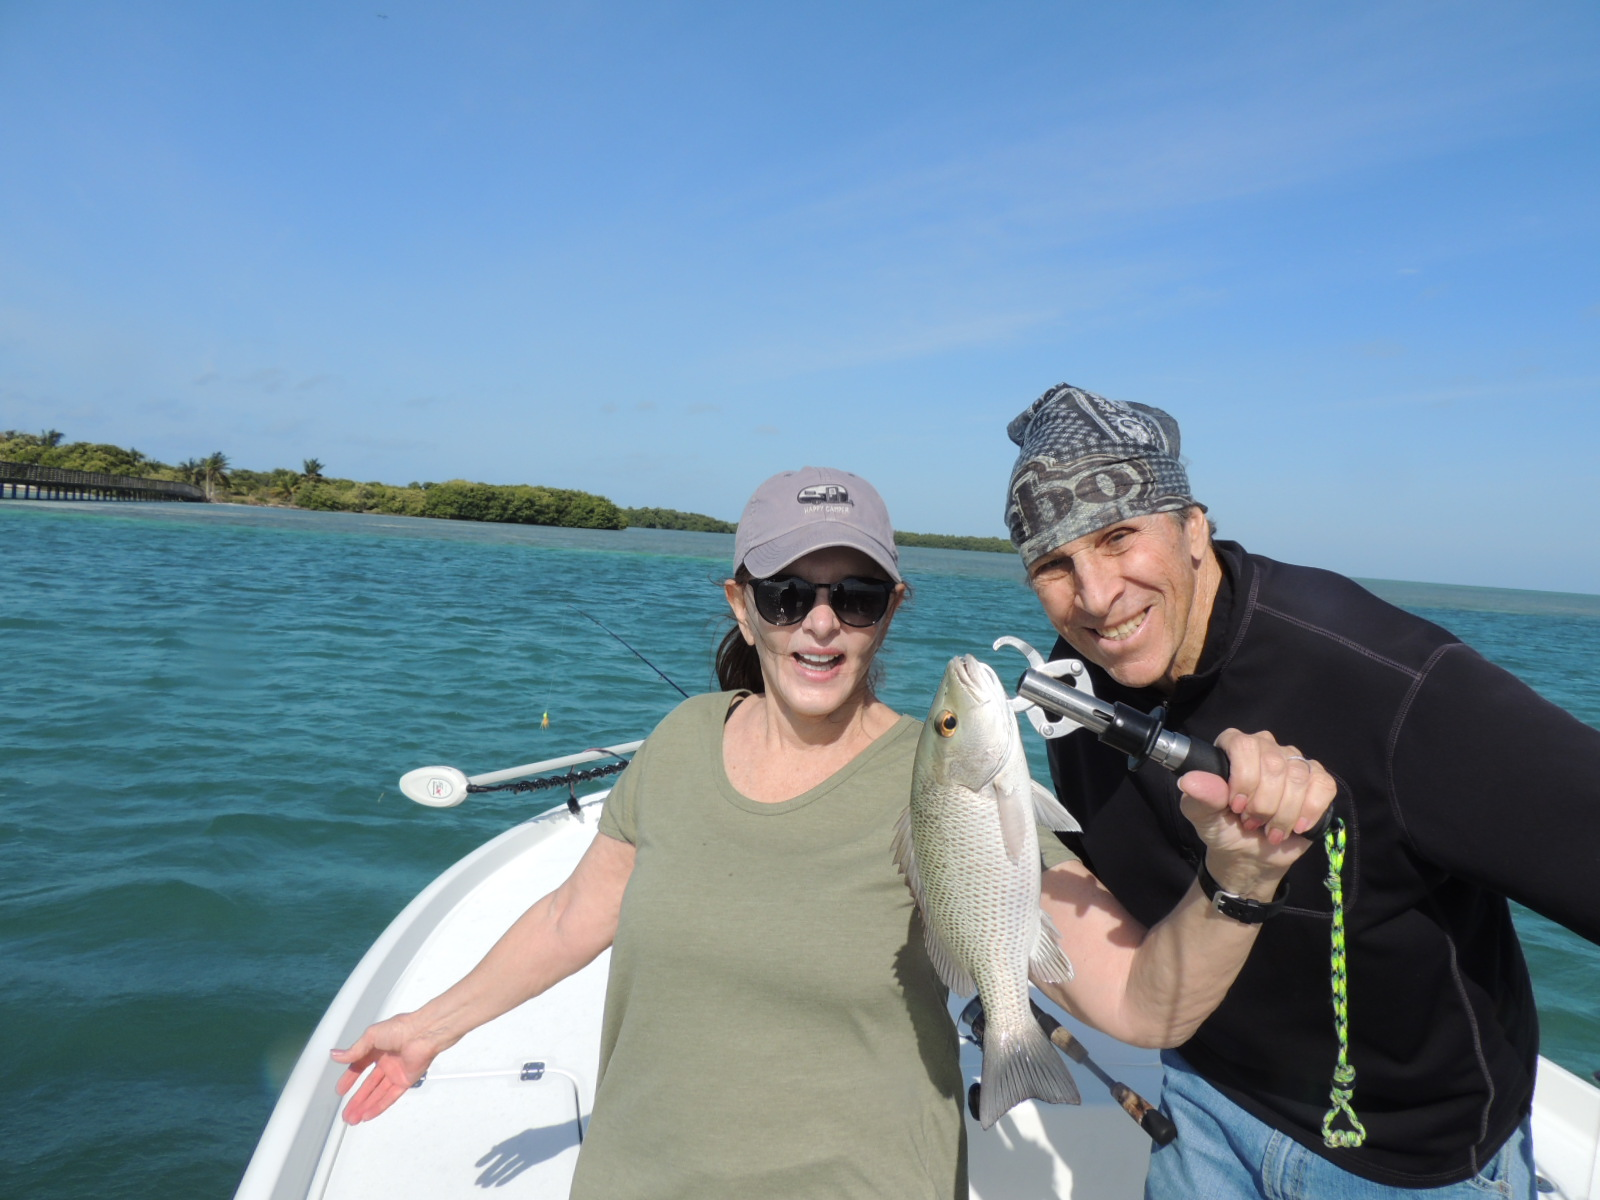 Bruce and Annie showing off a nice size catch.